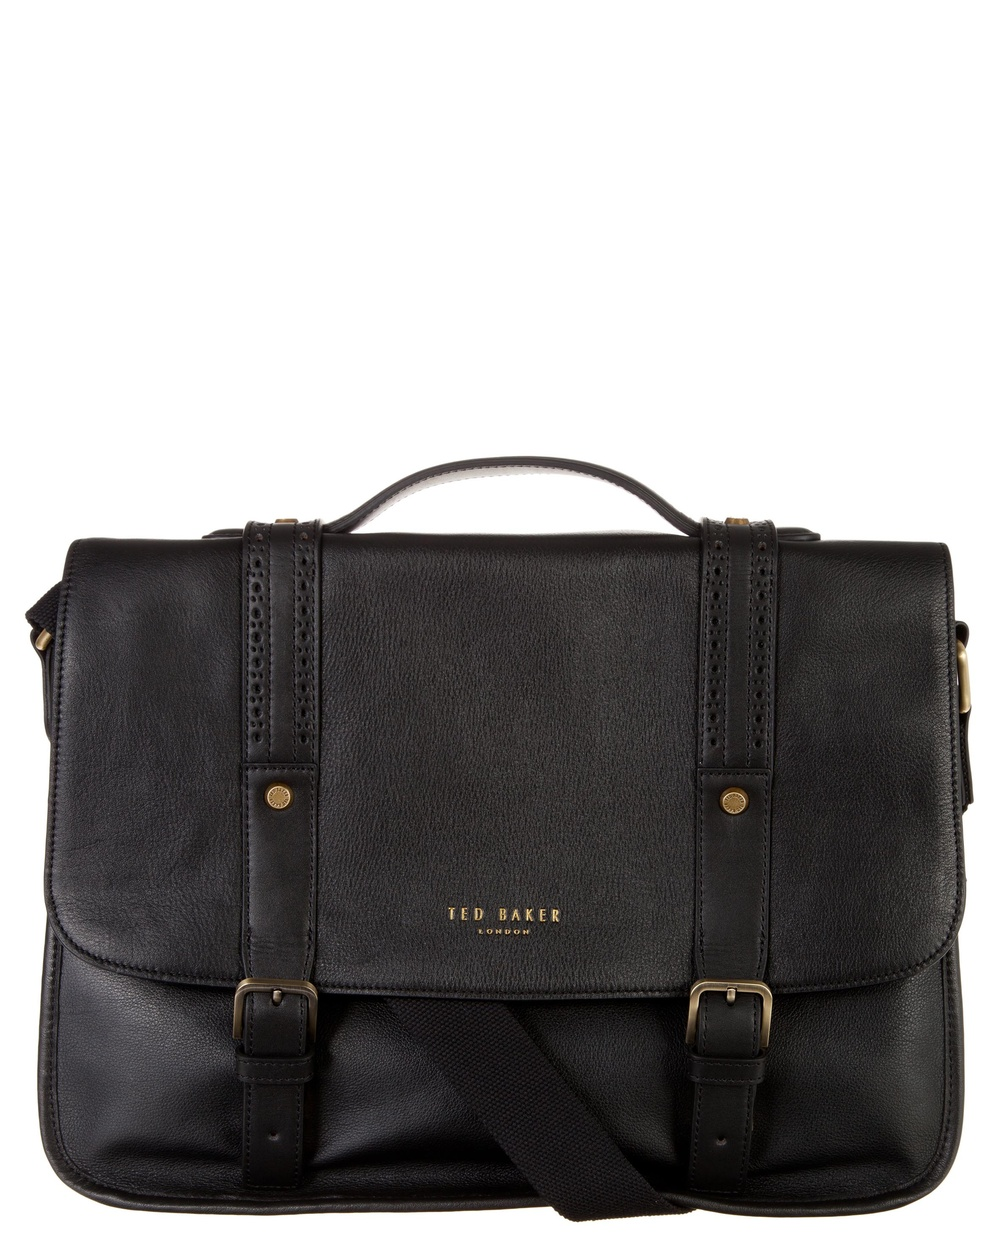 http_static.theiconic.com.au_p_ted-baker-9765-499771-1.jpg